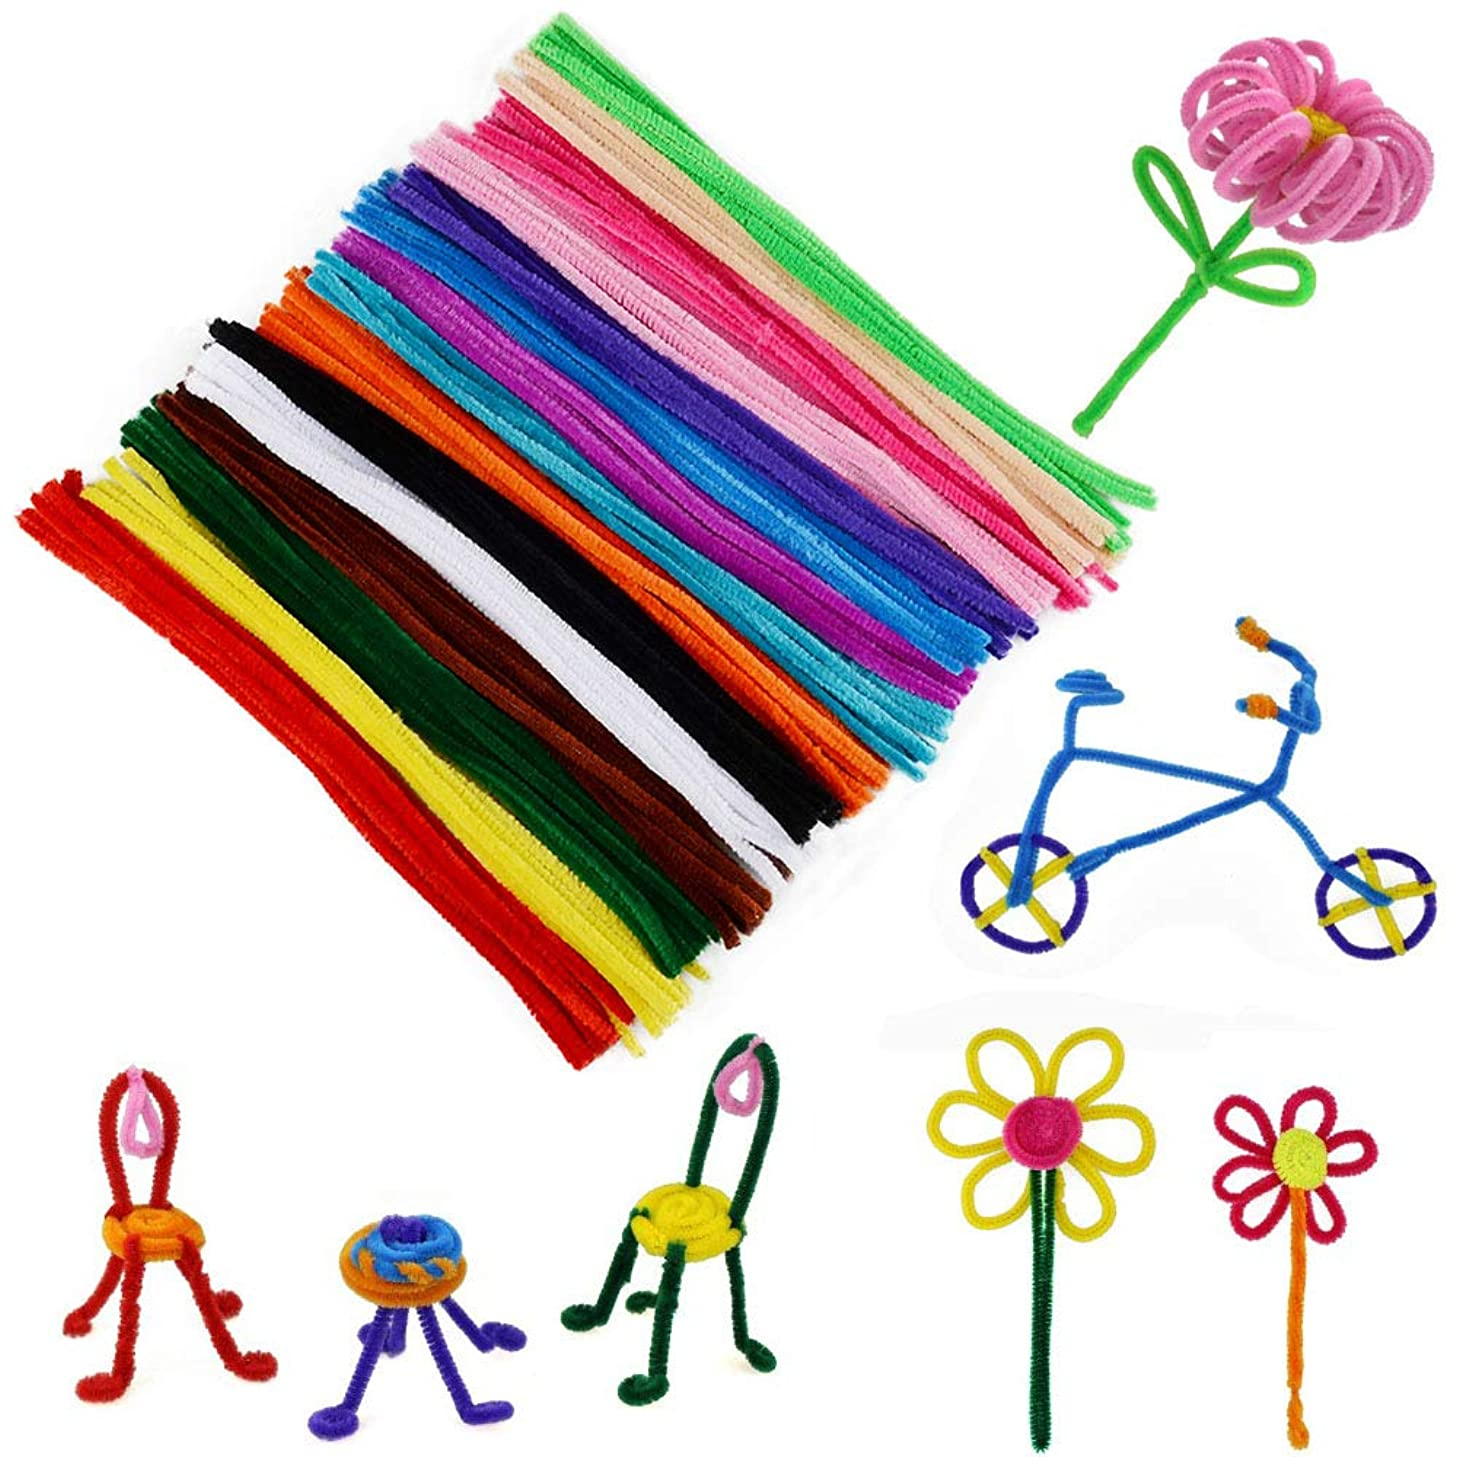 WIWAPLEX 150 Pcs Pipe Cleaners, Assorted Pipe Cleaner, Art Supplies Chenille Stems 6 mm x 12 Inch, Colors Pipe Cleaners Craft Decorations, Children Kids Plush Educational Toy Crafts Handmade DIY Craft